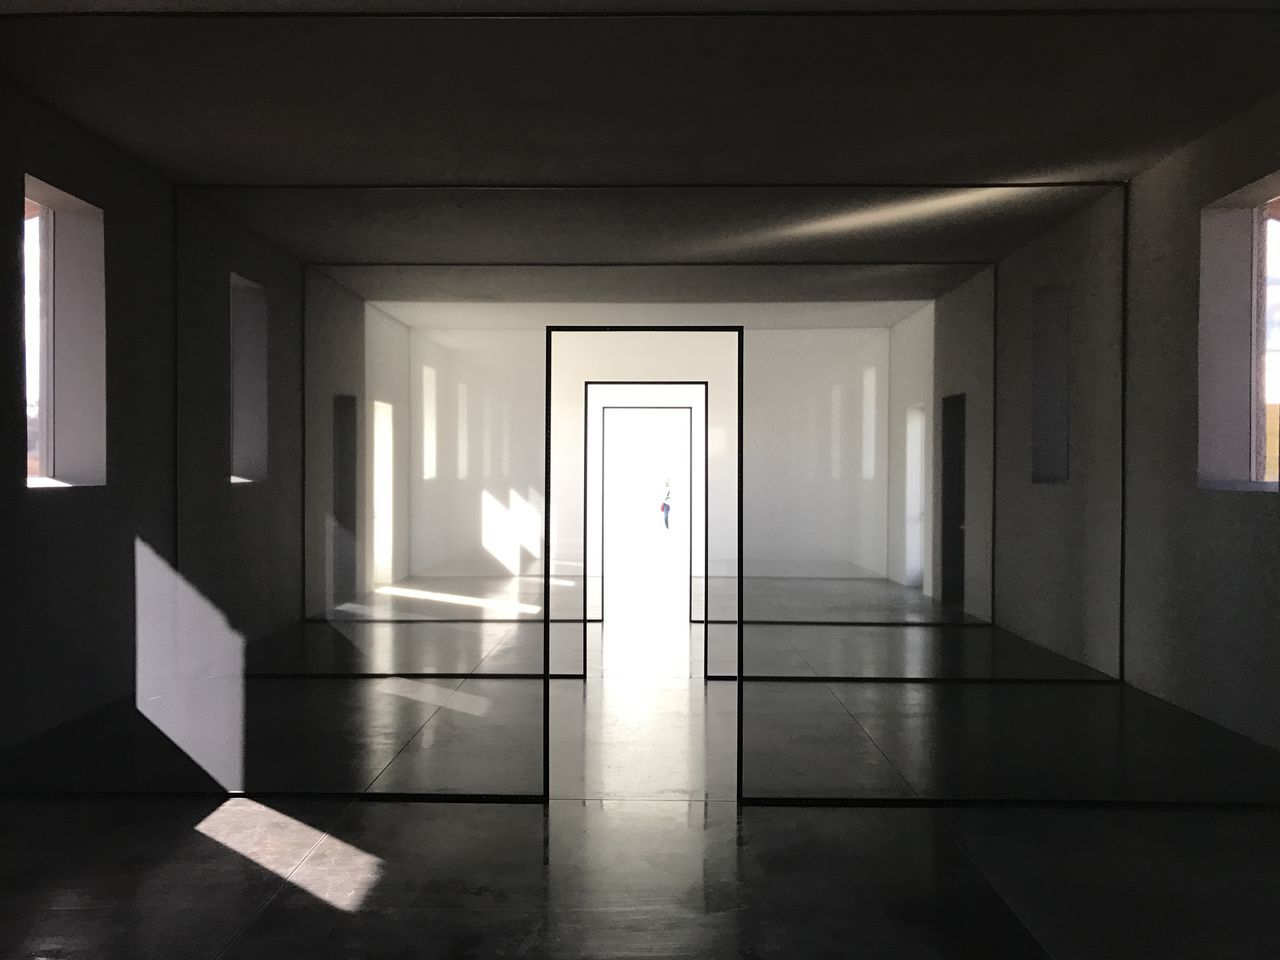 Architecture Built Structure Day Door Empty Entrance Hall Indoors  Modern No People